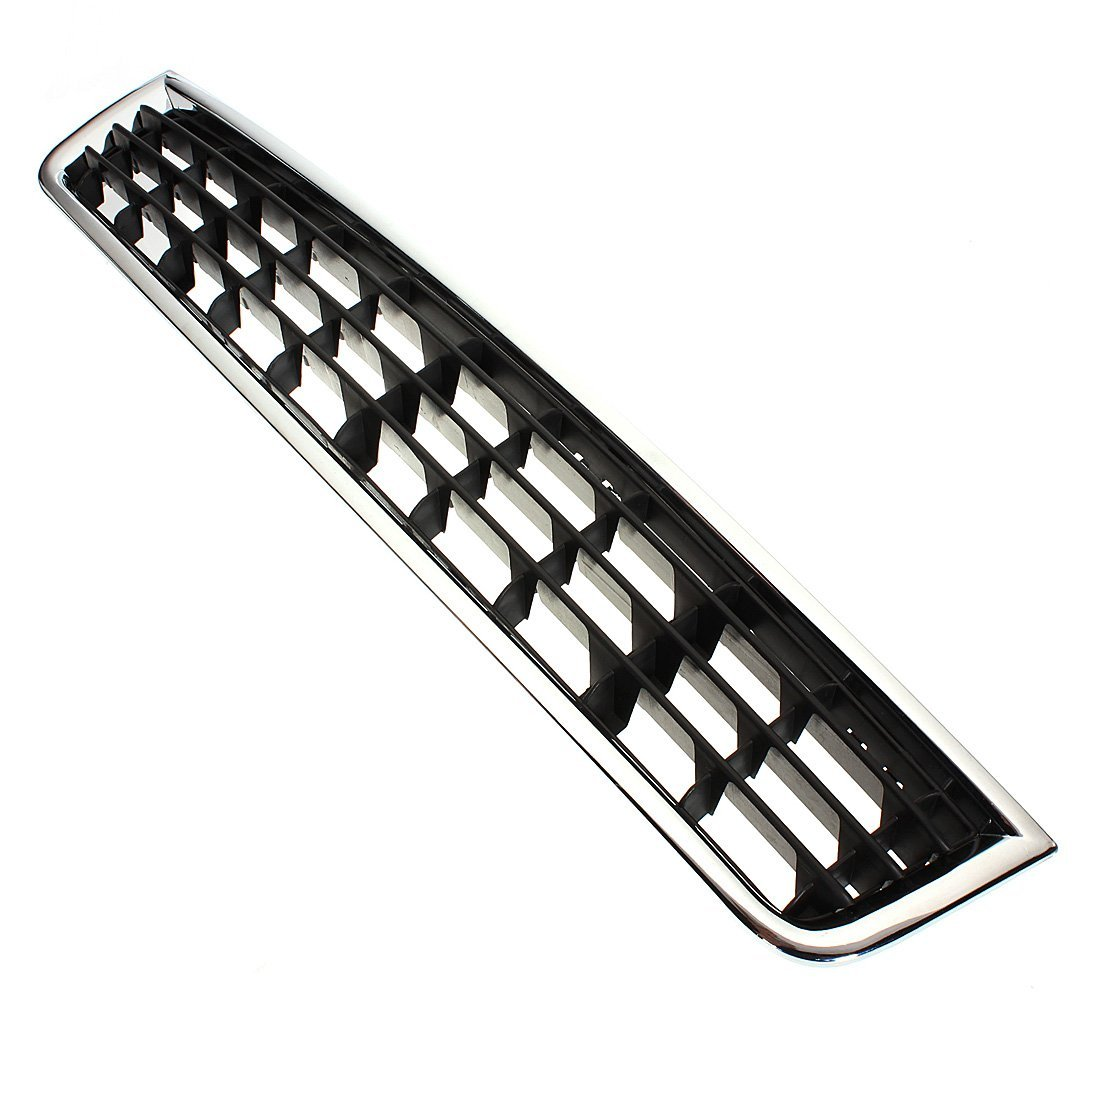 100% Quality Grille Chrome Radiator Grille Front Bumper Center For Audi A4 B6 Limousine 02-05